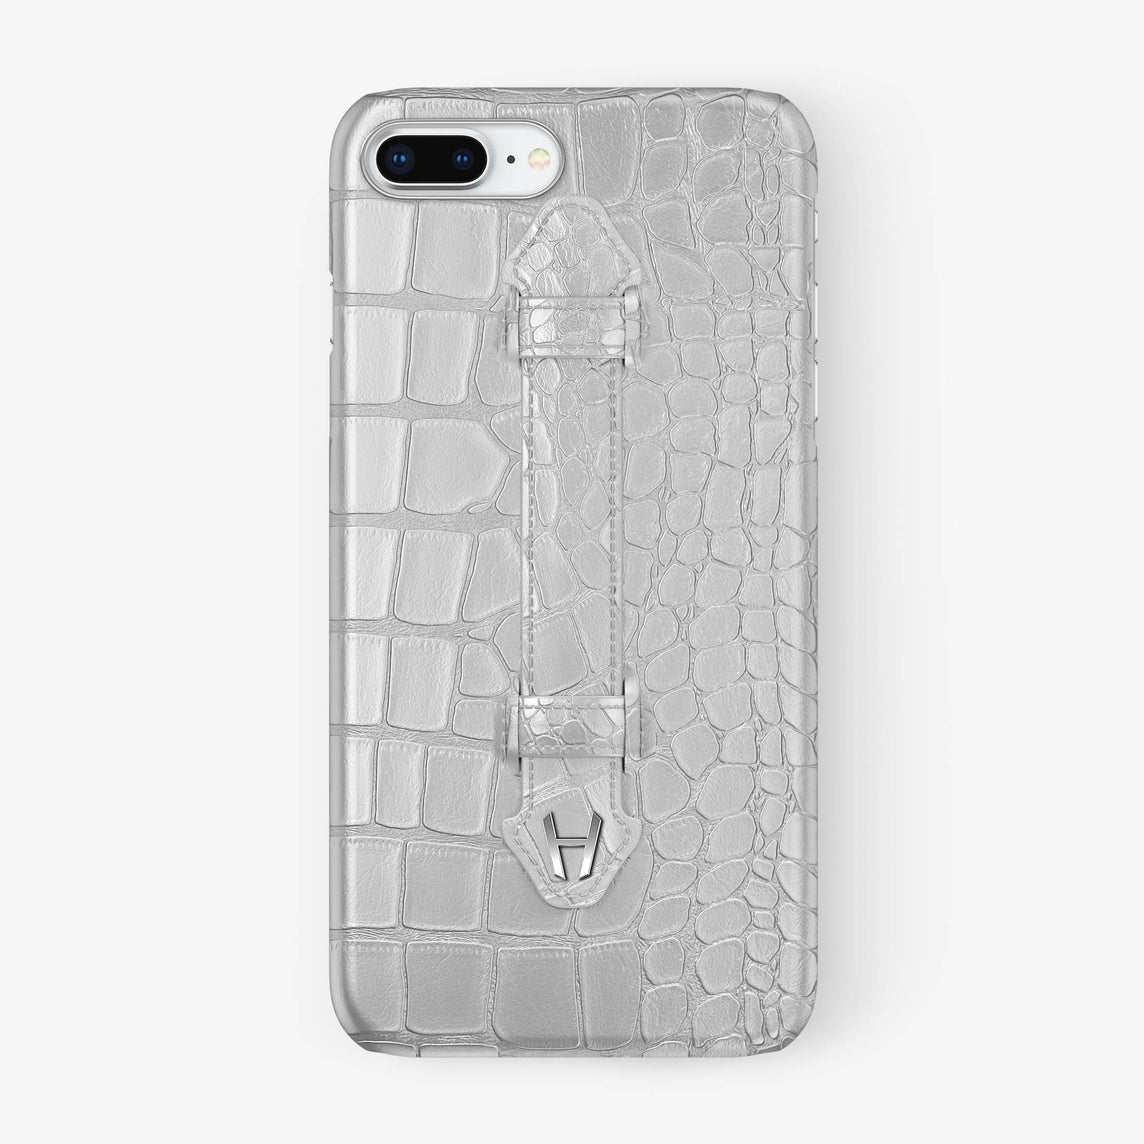 White Alligator iPhone Finger Case for iPhone 7/8 Plus finishing stainless steel - Hadoro Luxury Cases